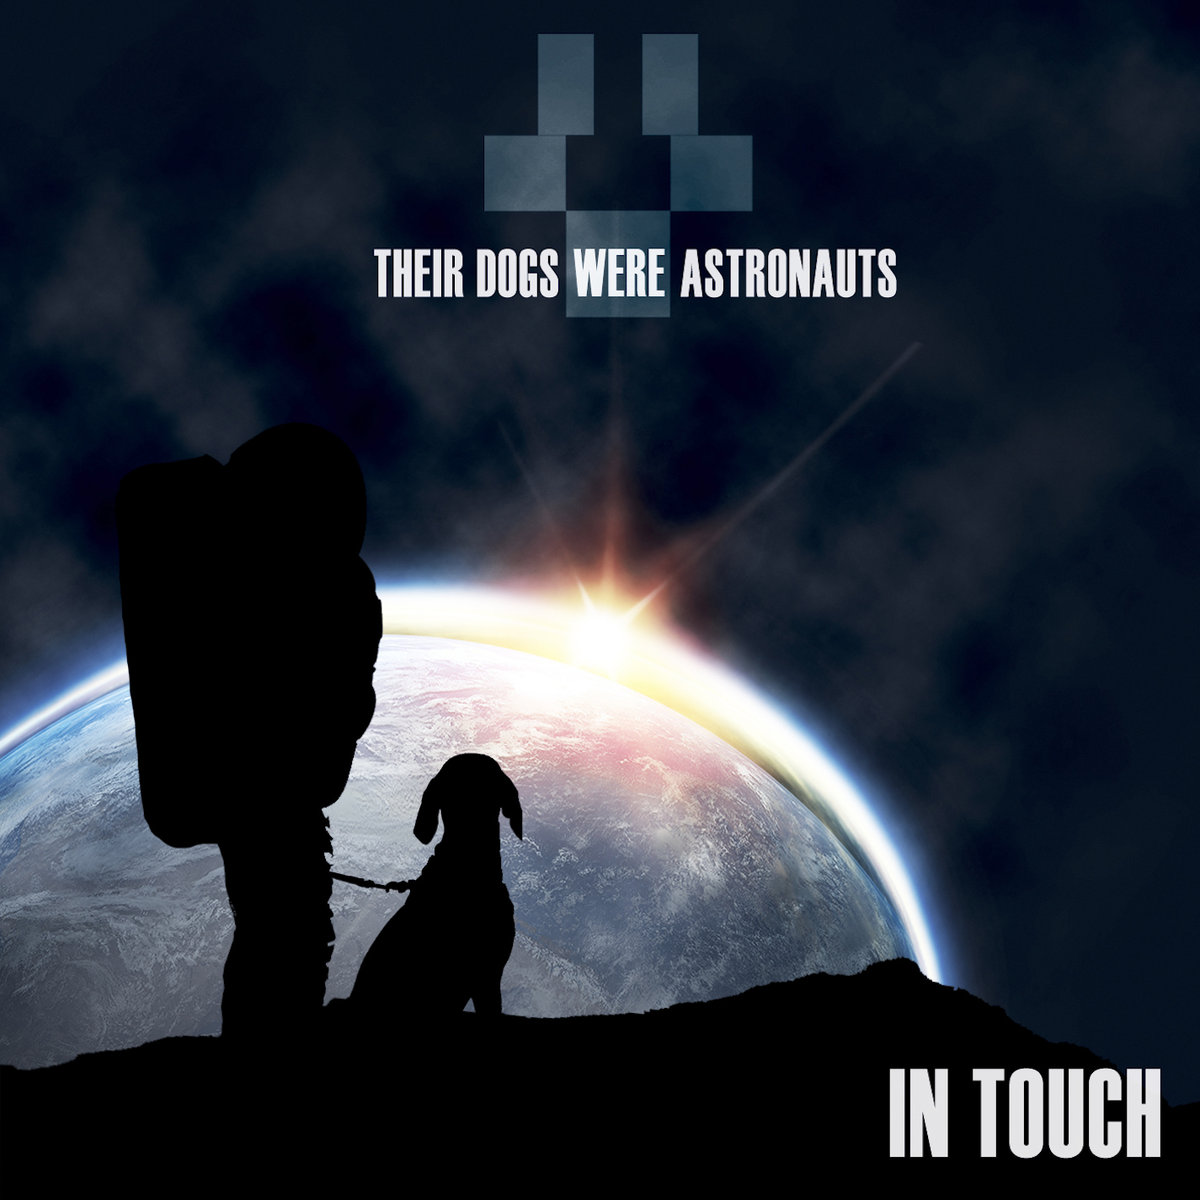 Their Dogs Were Astronauts - Pulse Of Matter @ 'In Touch' album (instrumental metal, metal)